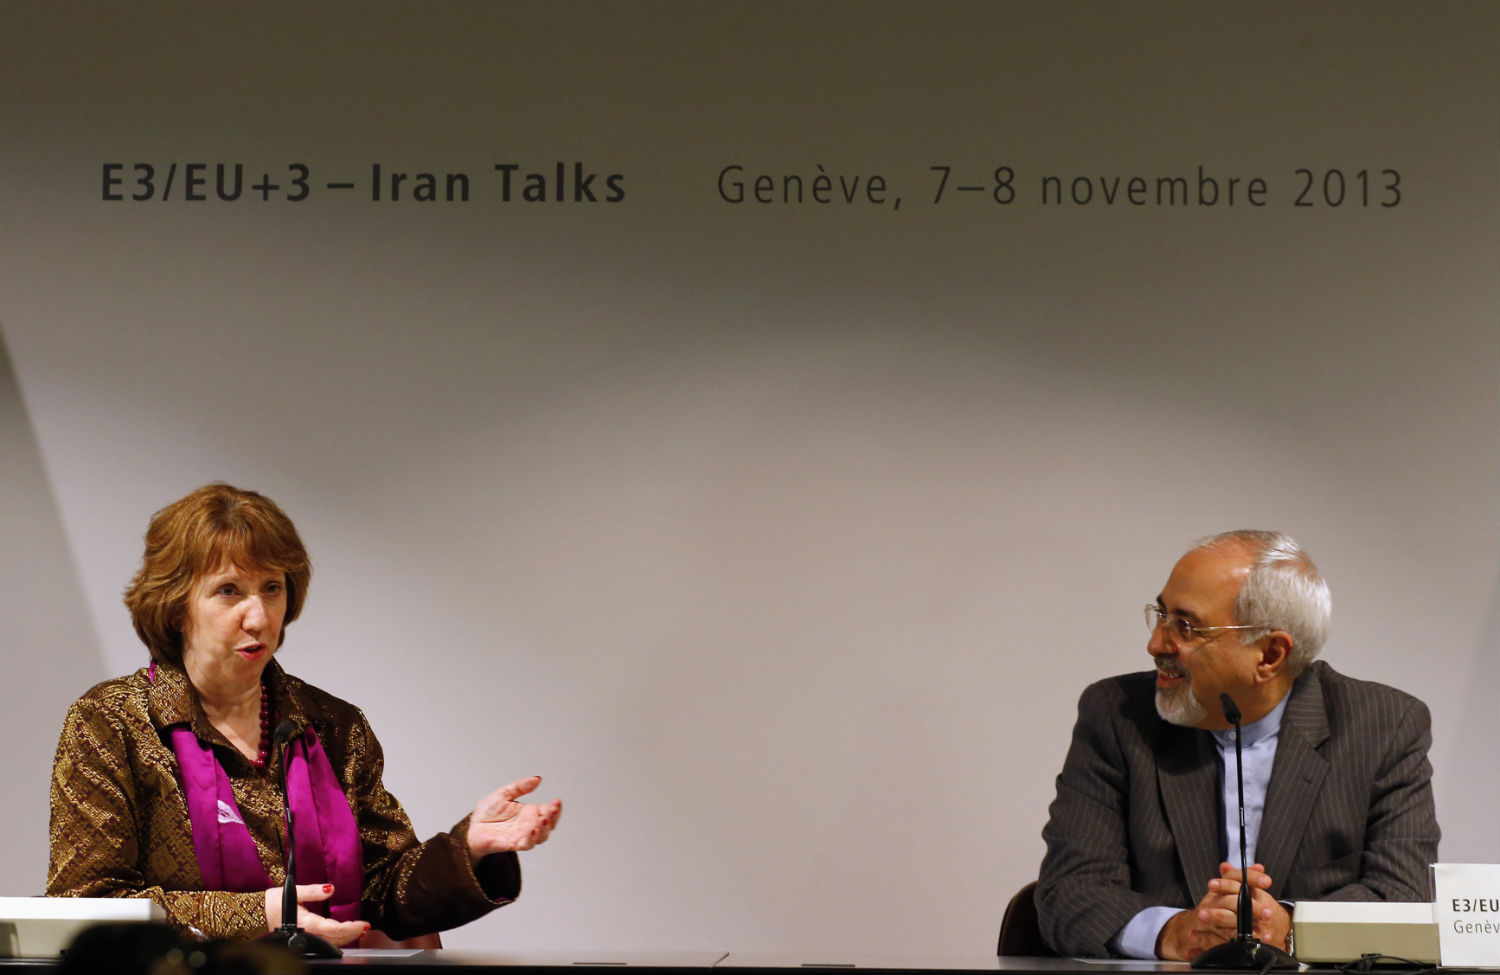 Iranian-Foreign-Minister-Mohammad-Javad-Zarif-and-European-Union-foreign-policy-chief-Catherine-Ashton-at-a-news-conference-during-nuclear-talks-in-Geneva-November-10-2013.-ReutersDenis-Balibouse